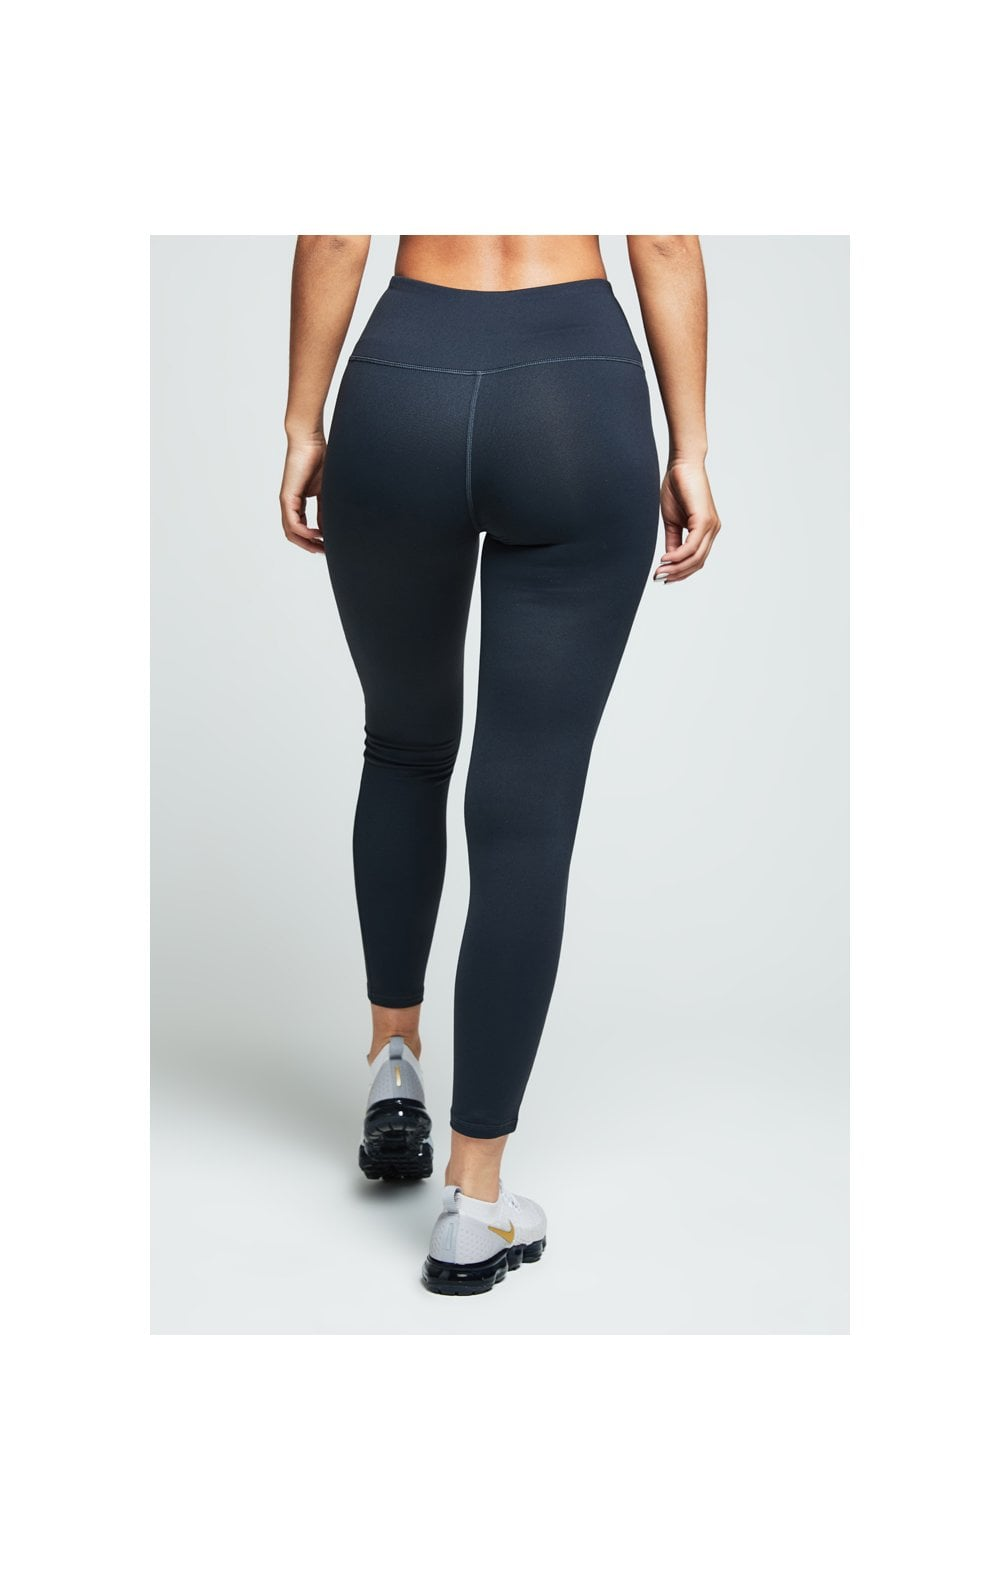 Load image into Gallery viewer, SikSilk Gym Leggings – Charcoal (5)